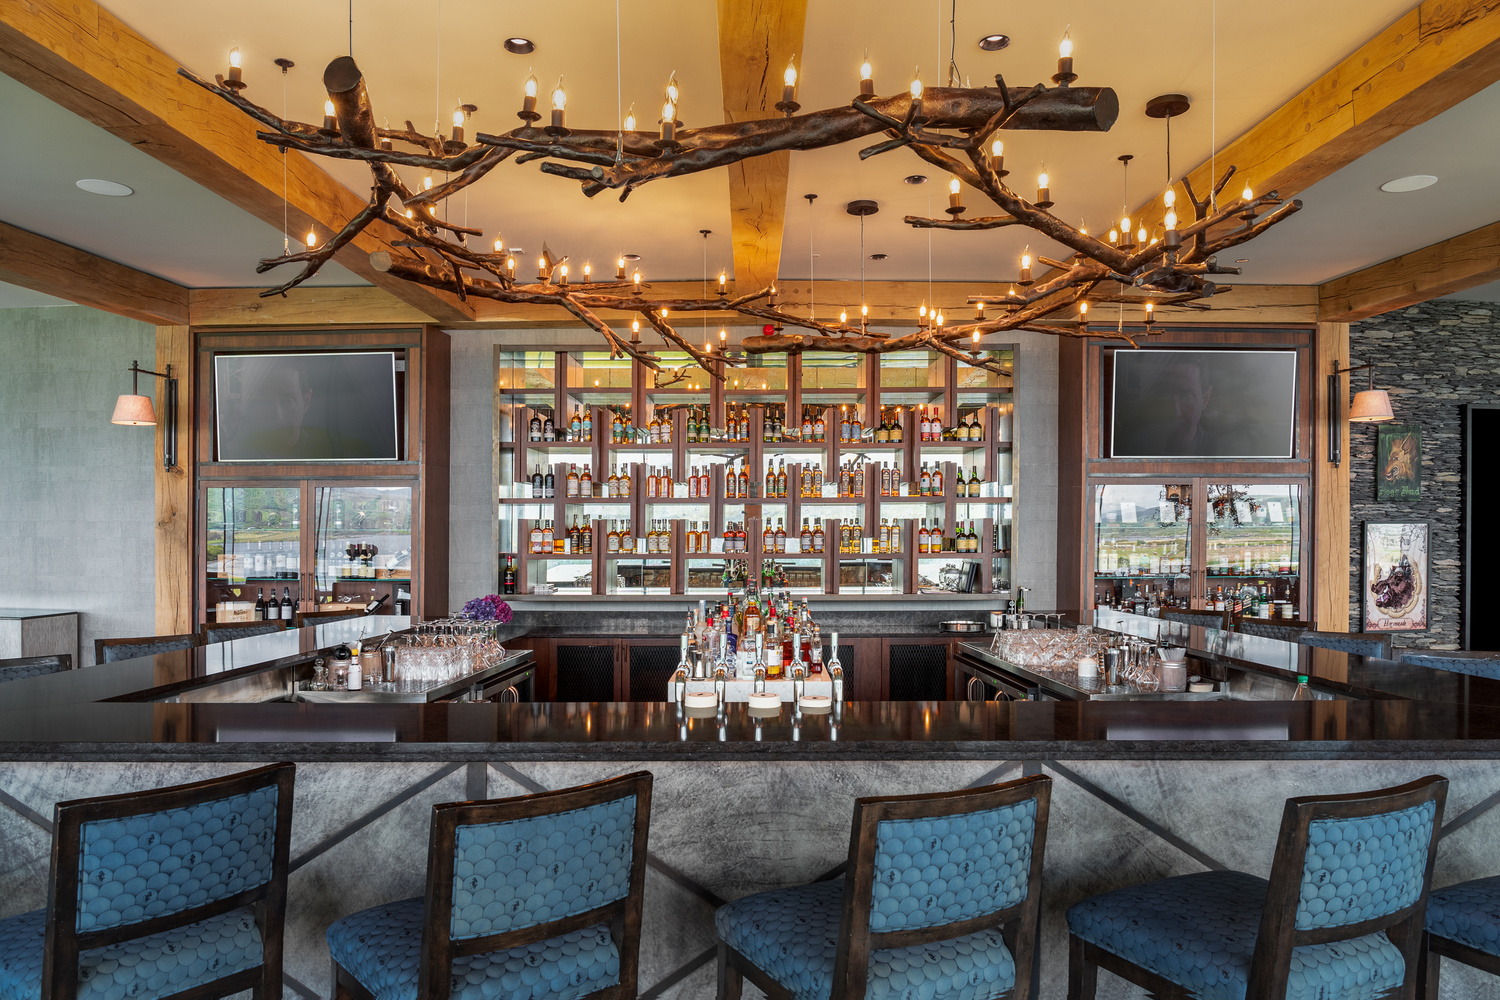 hotel bar with high stool seating and oak-wood timber beams above